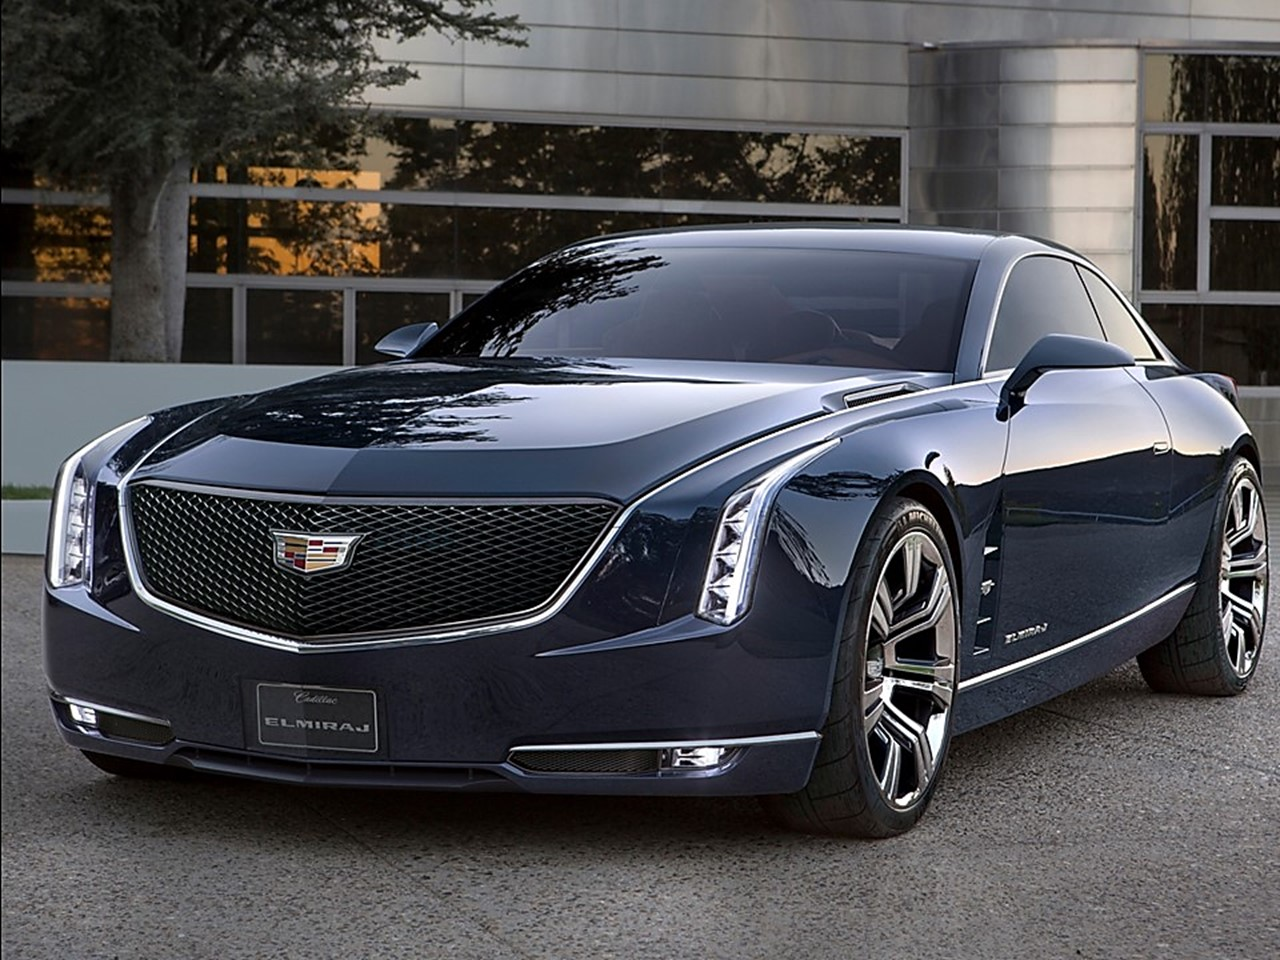 5?w\=450 cadillac eldorado i need the distributor wiring diagram for on global electric motorcars wiring diagrams at bayanpartner.co